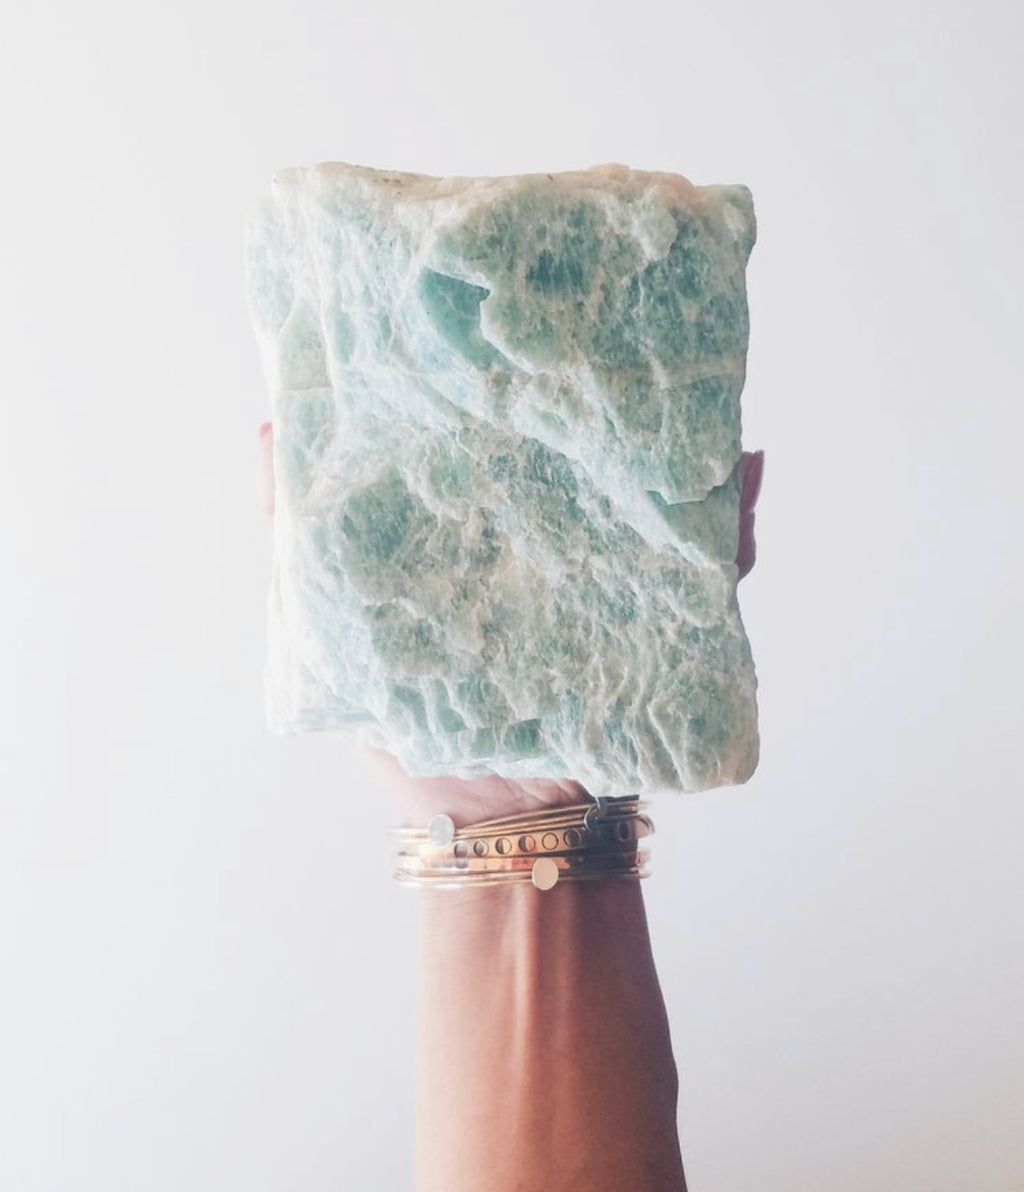 Gemstone of the Week - Amazonite